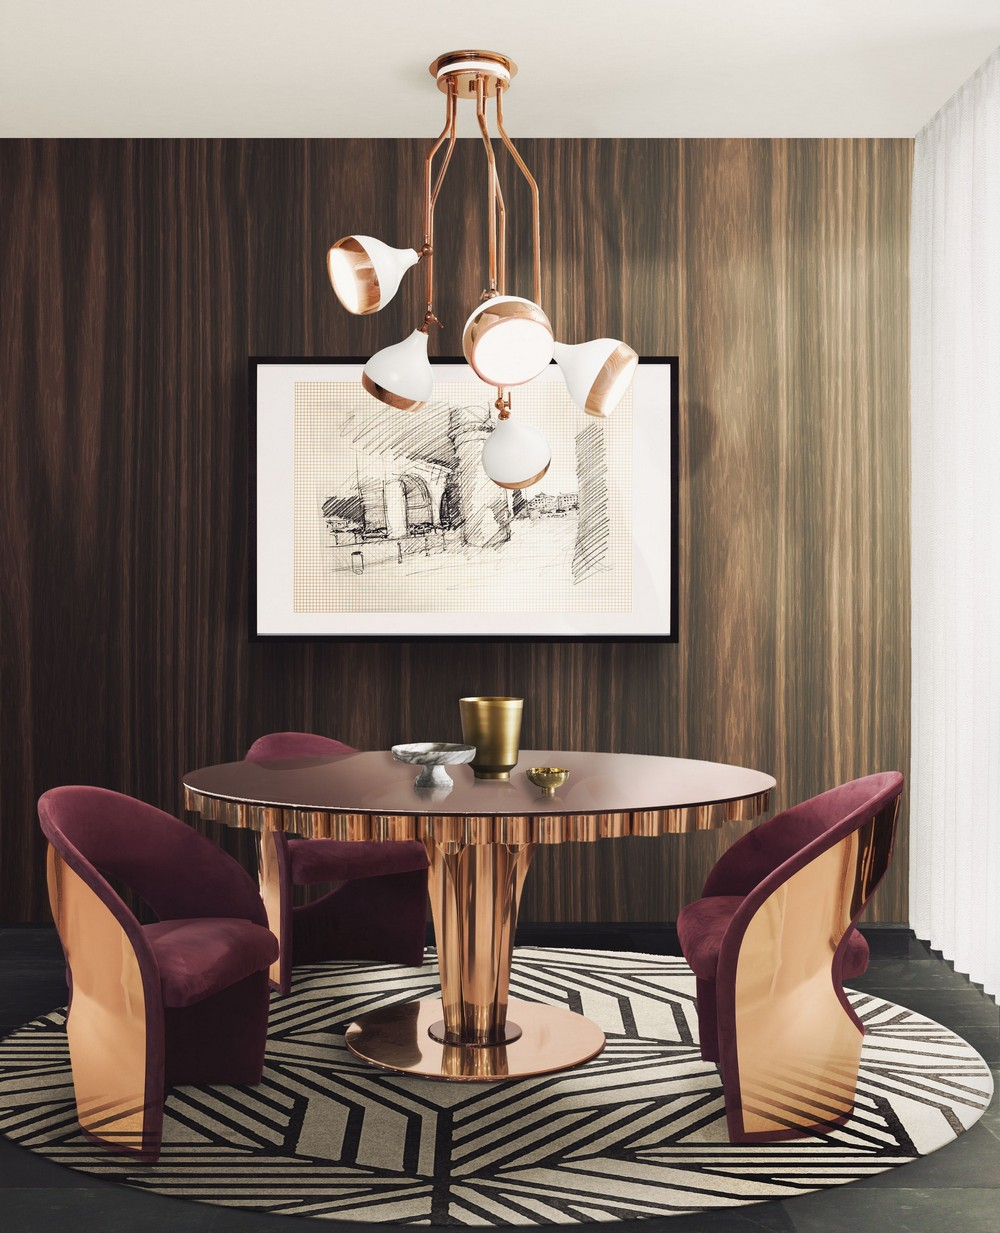 Dining Room Furniture to Discover at Covet Valley covet valley Dining Room Furniture to Discover at Covet Valley joness2